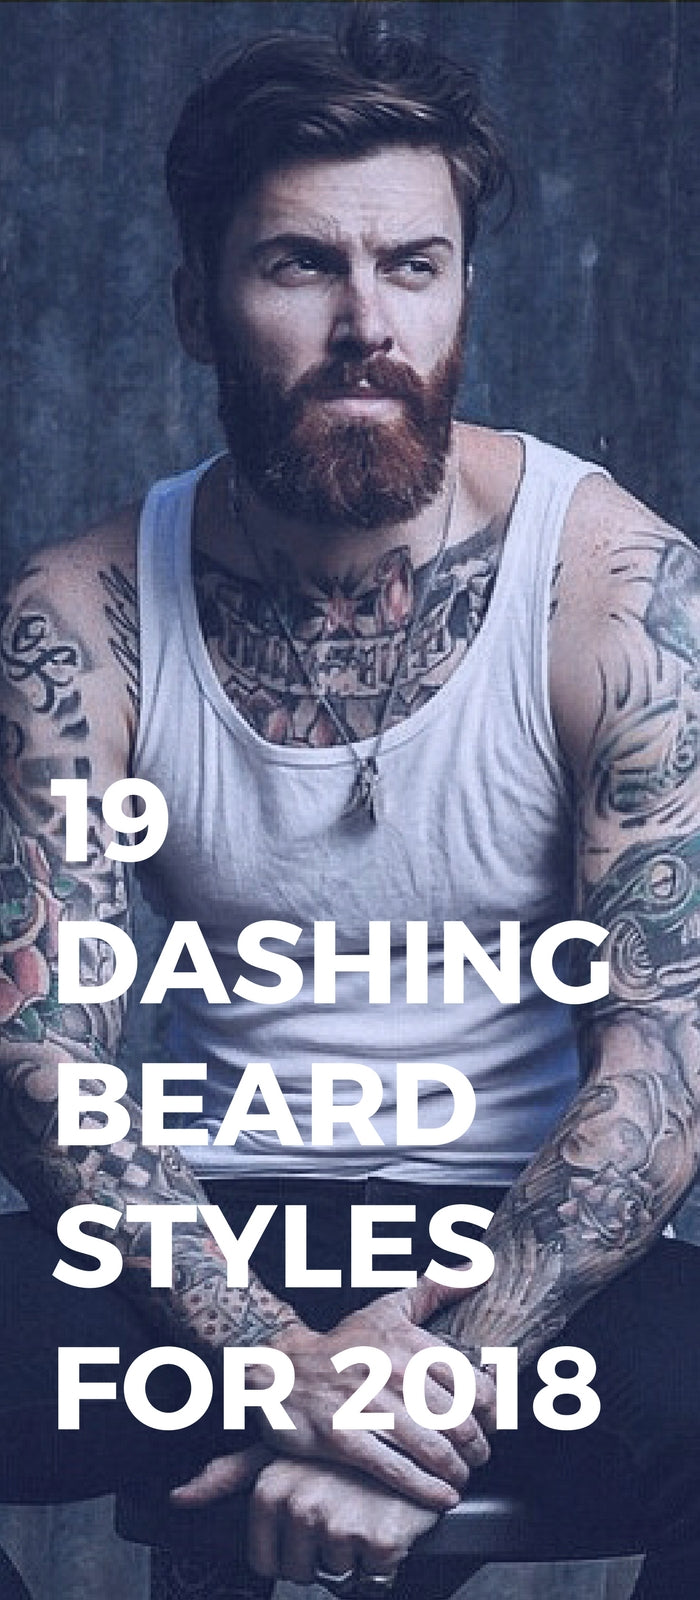 19 Dashing Beard Styles For 2018